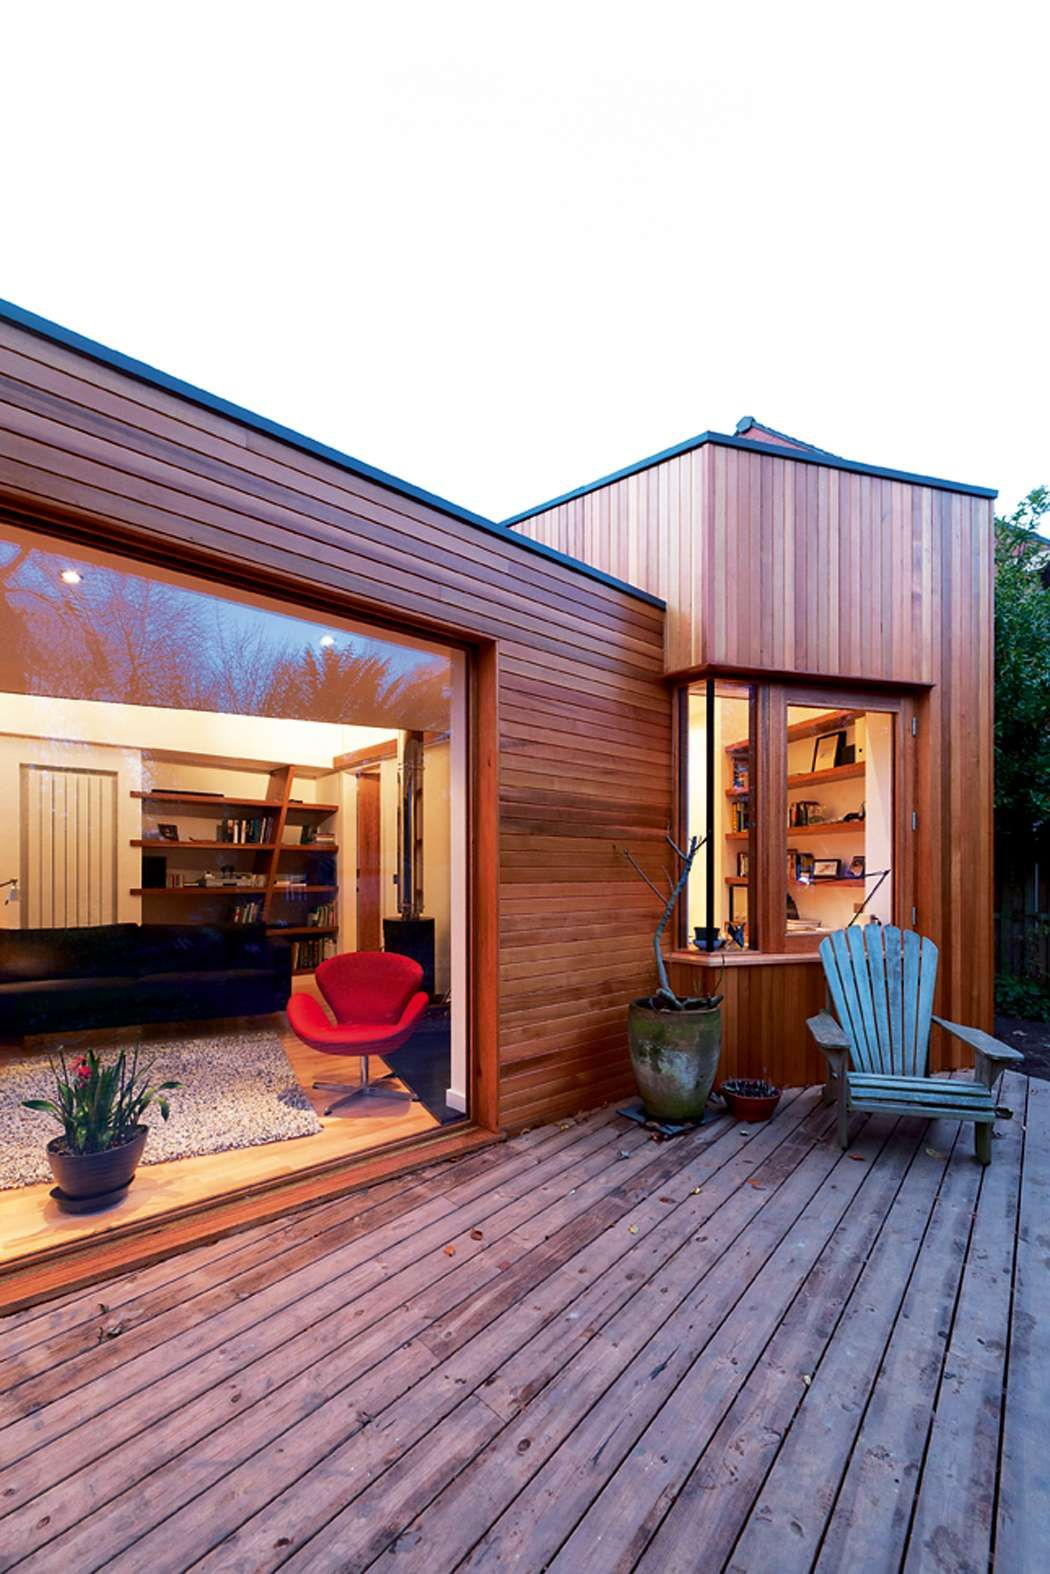 Wood cladding - 49 Exterior Wood Cladding Ideas for ...